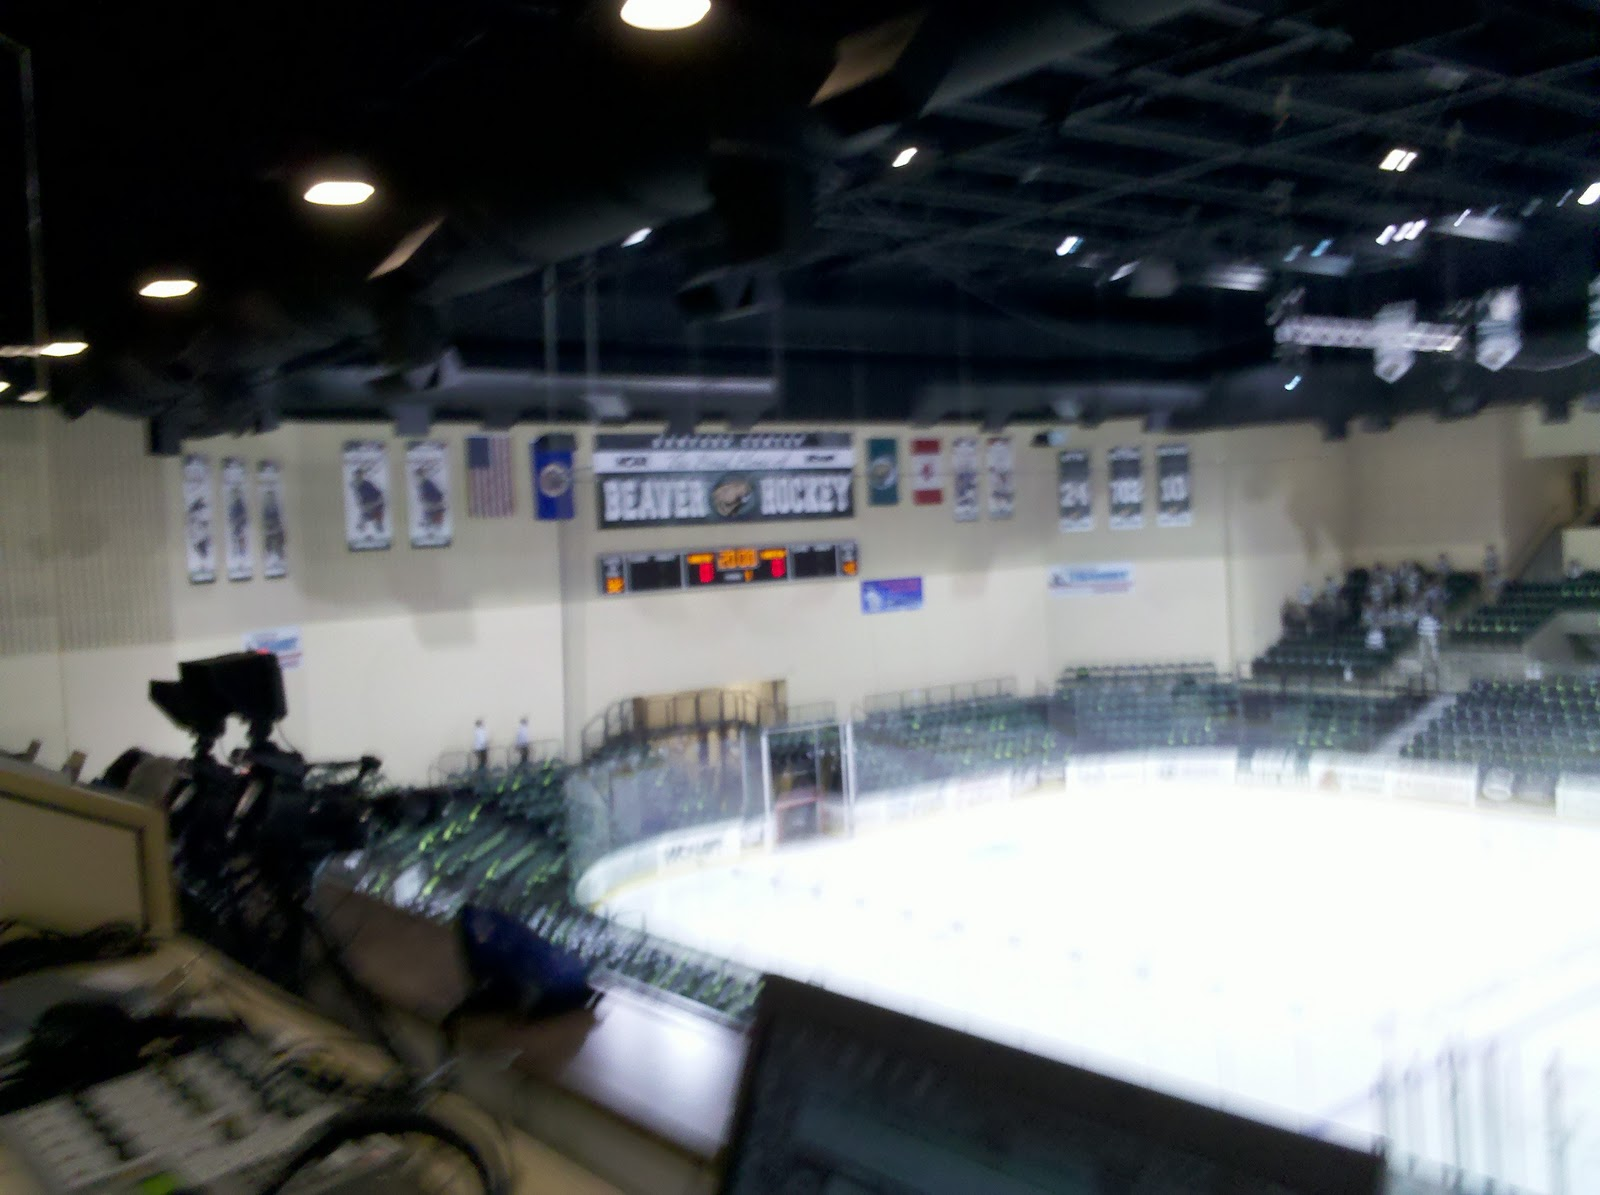 PucKato: A Peek At The Sanford Center (updated